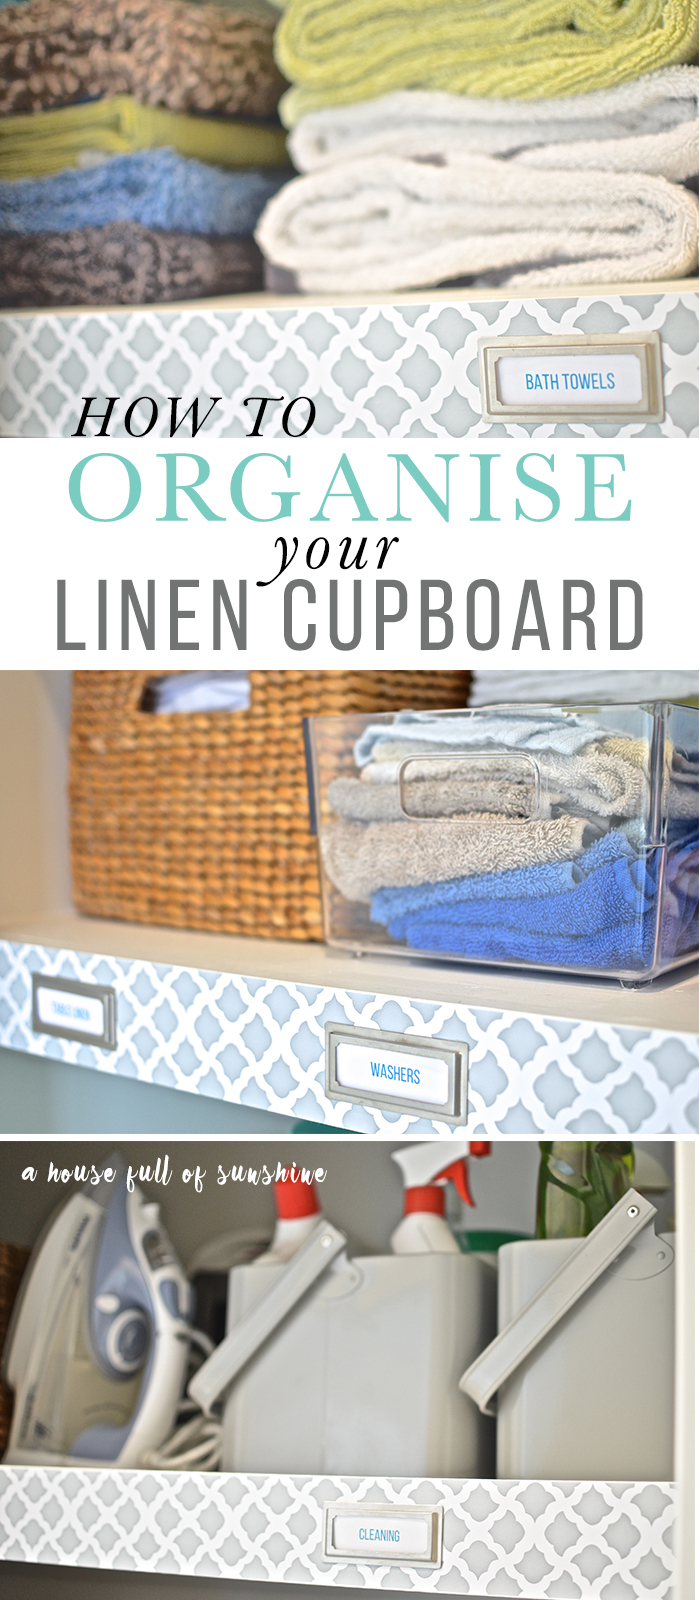 How to organise a linen cupboard